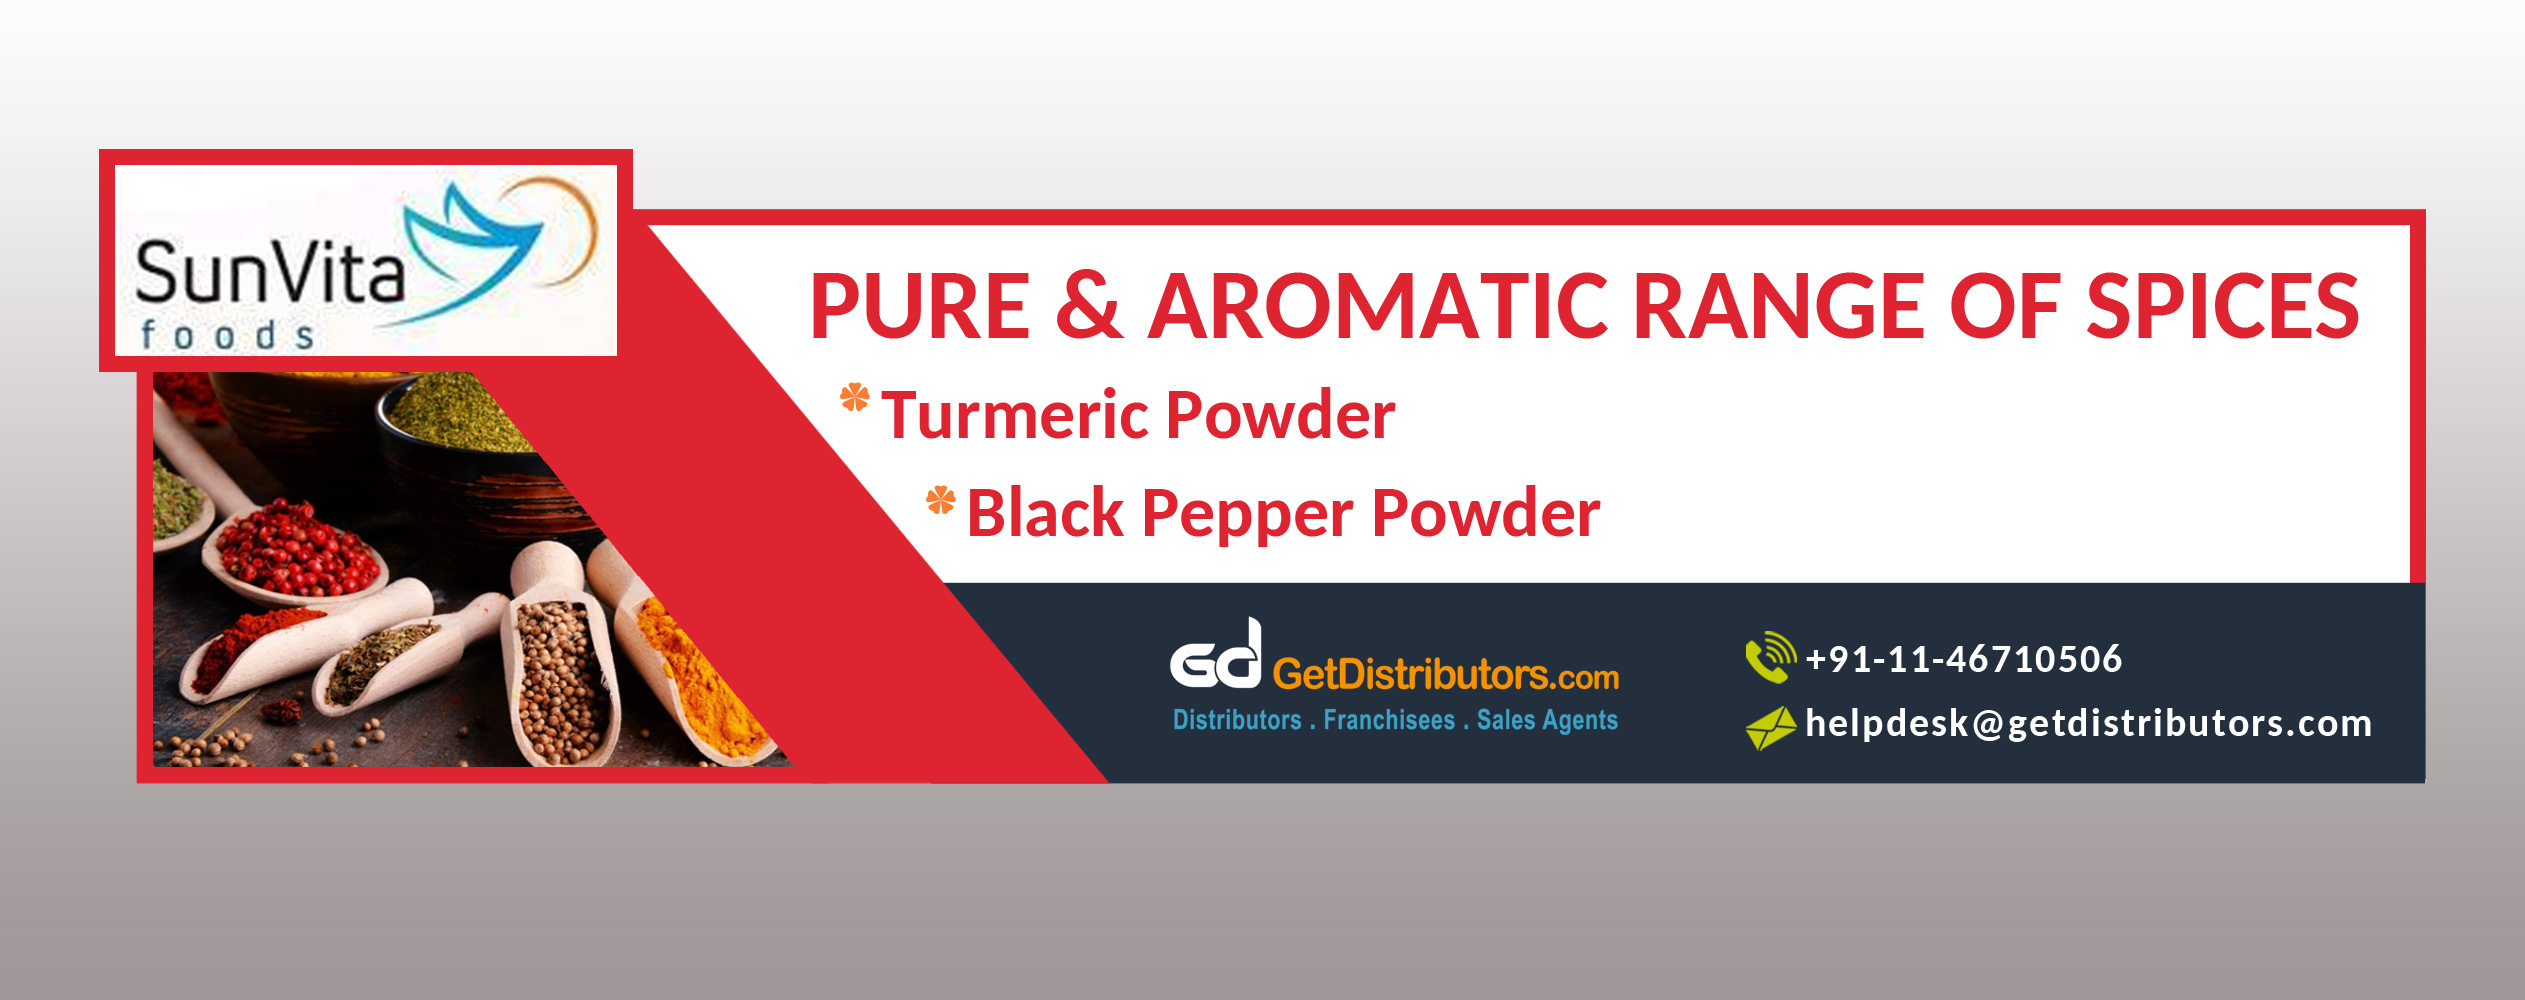 Pure & Aromatic Range of Spices